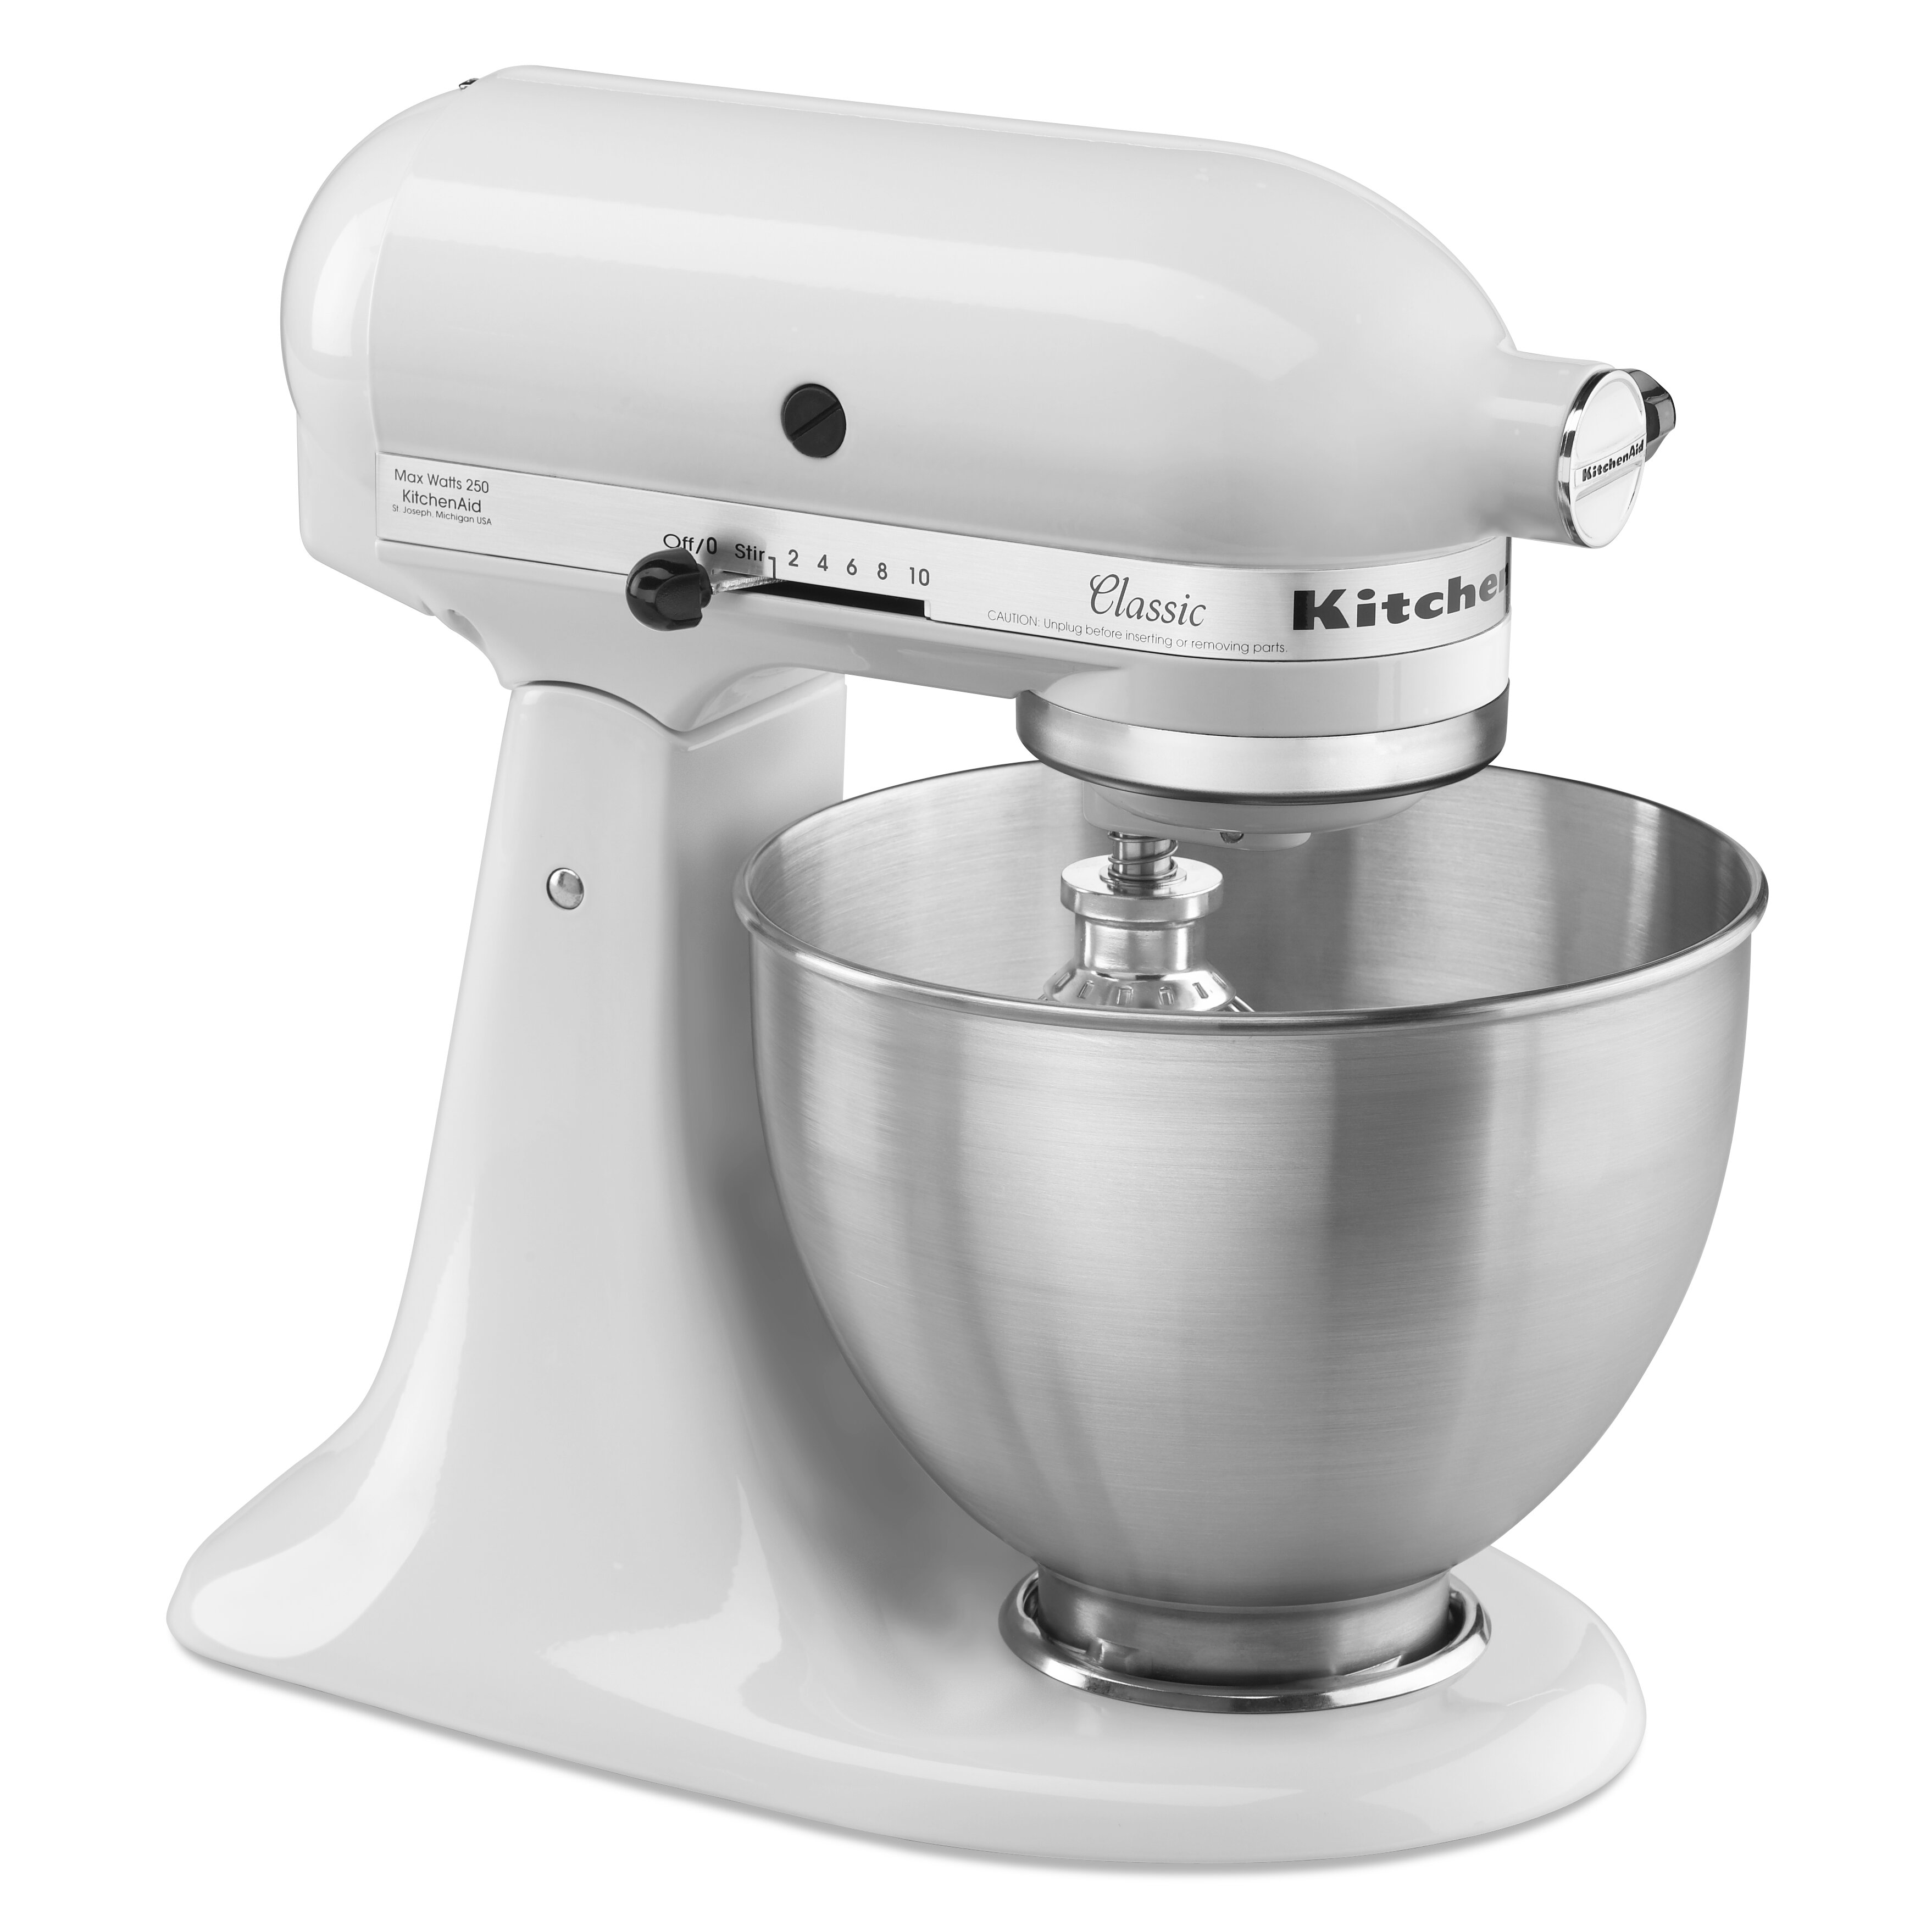 Kitchenaid classic series 4 5 qt stand mixer reviews - Walmart kitchen aid stand mixer ...